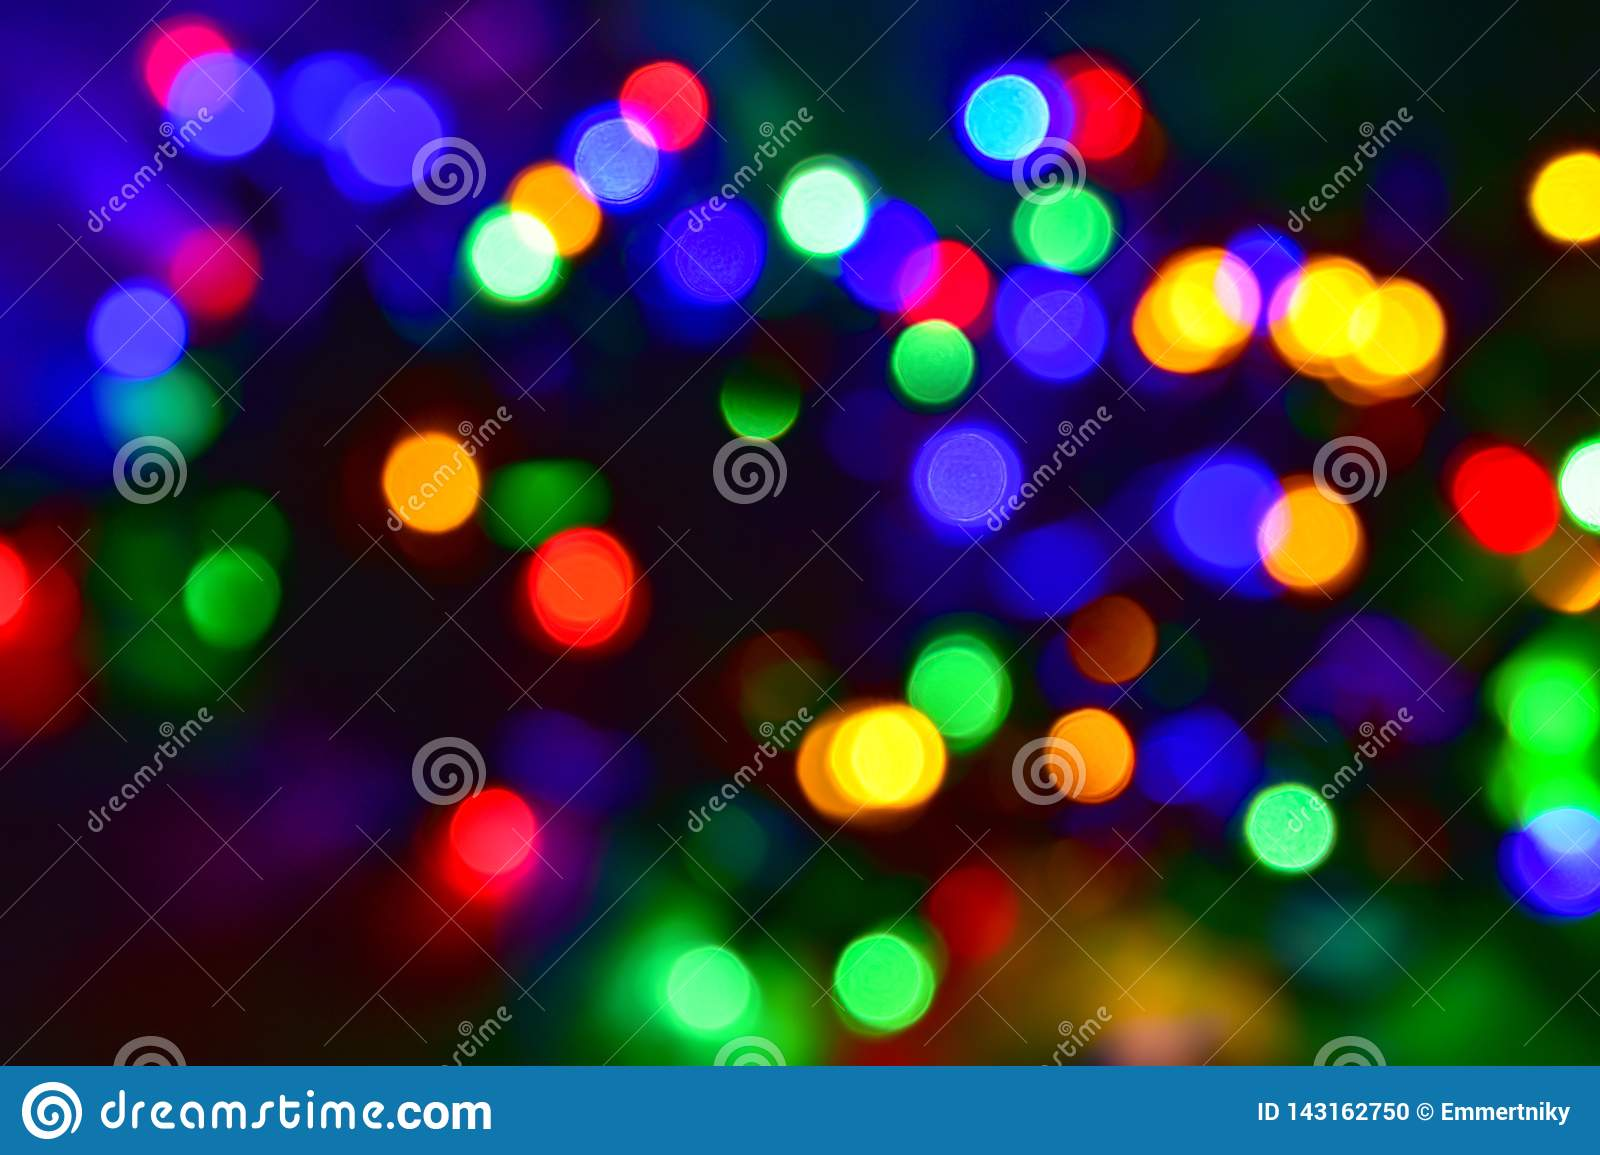 Colorful Christmas Lights Background.Colorful Christmas Lights Bokeh Abstract Background Stock